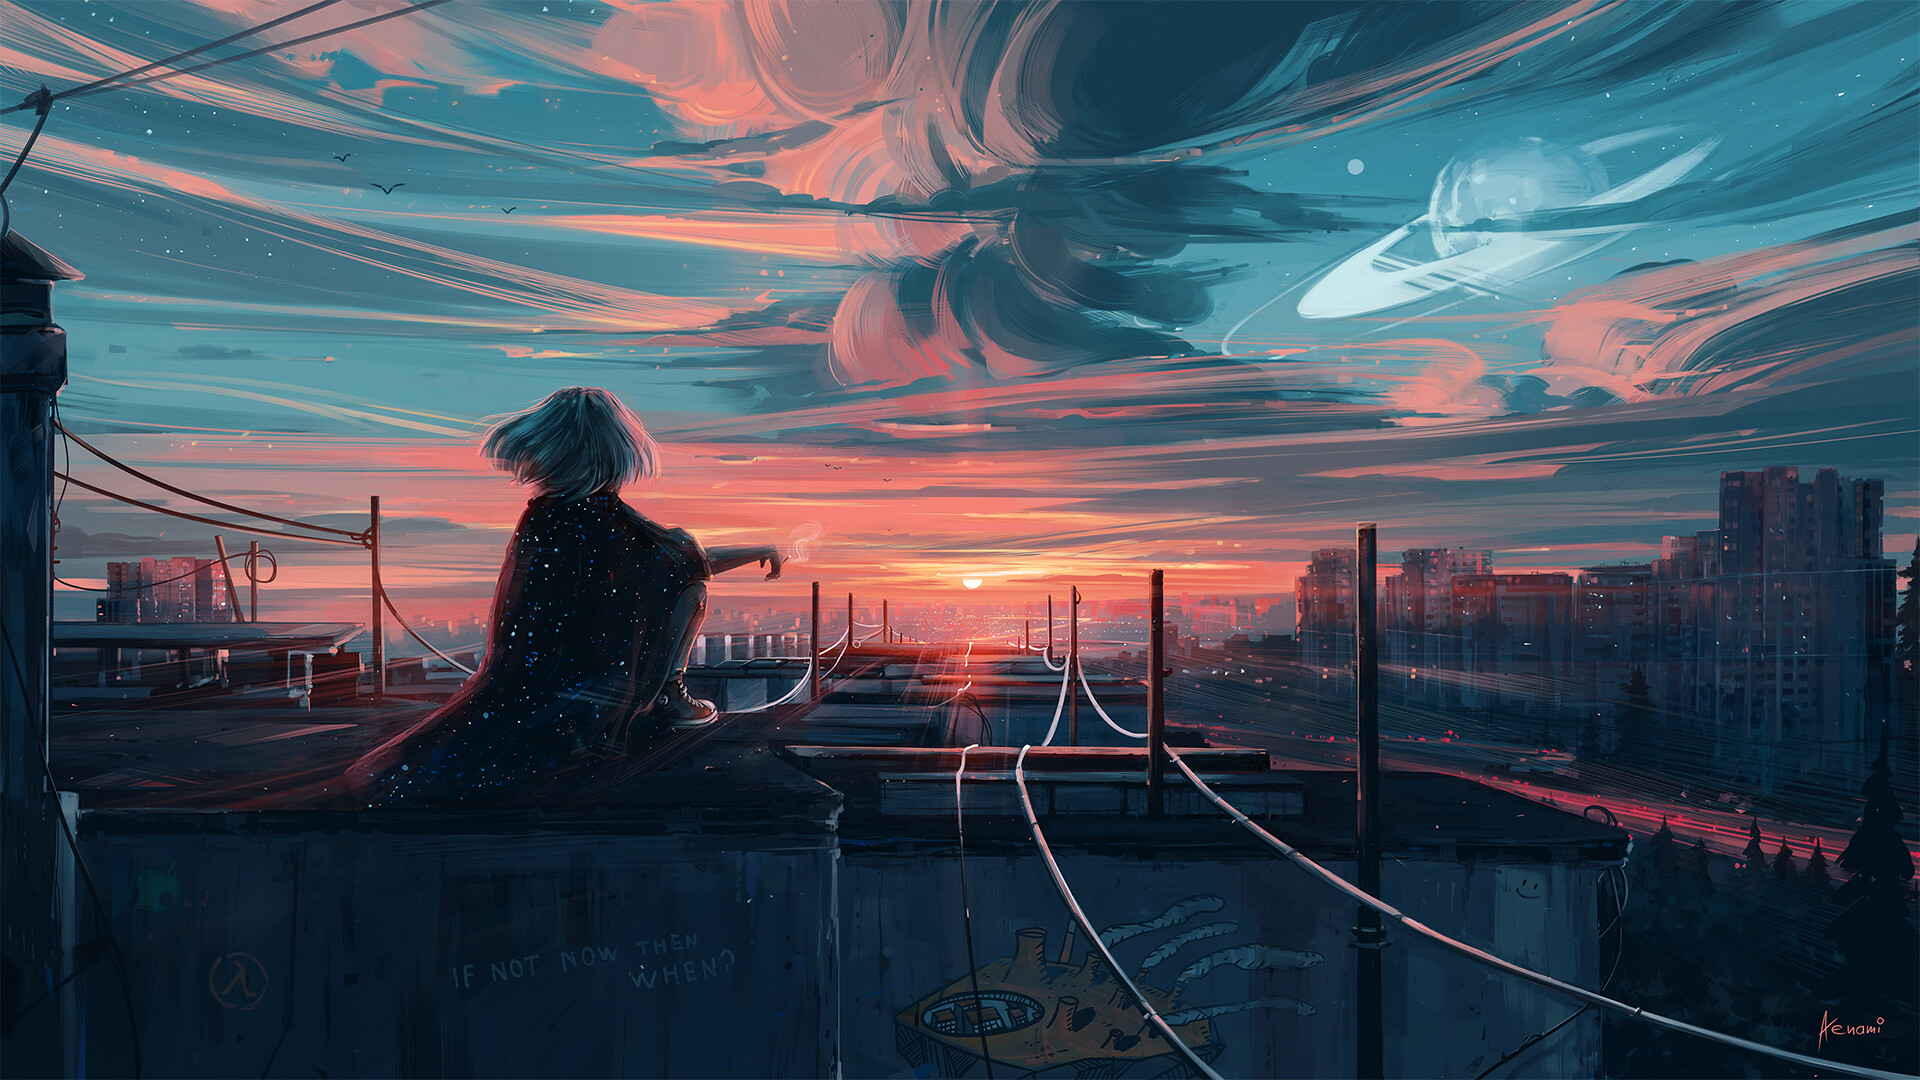 General 1920x1080 sunset sunlight rooftops Aenami clouds powerlines stars digital art artwork city cityscape horizon planet